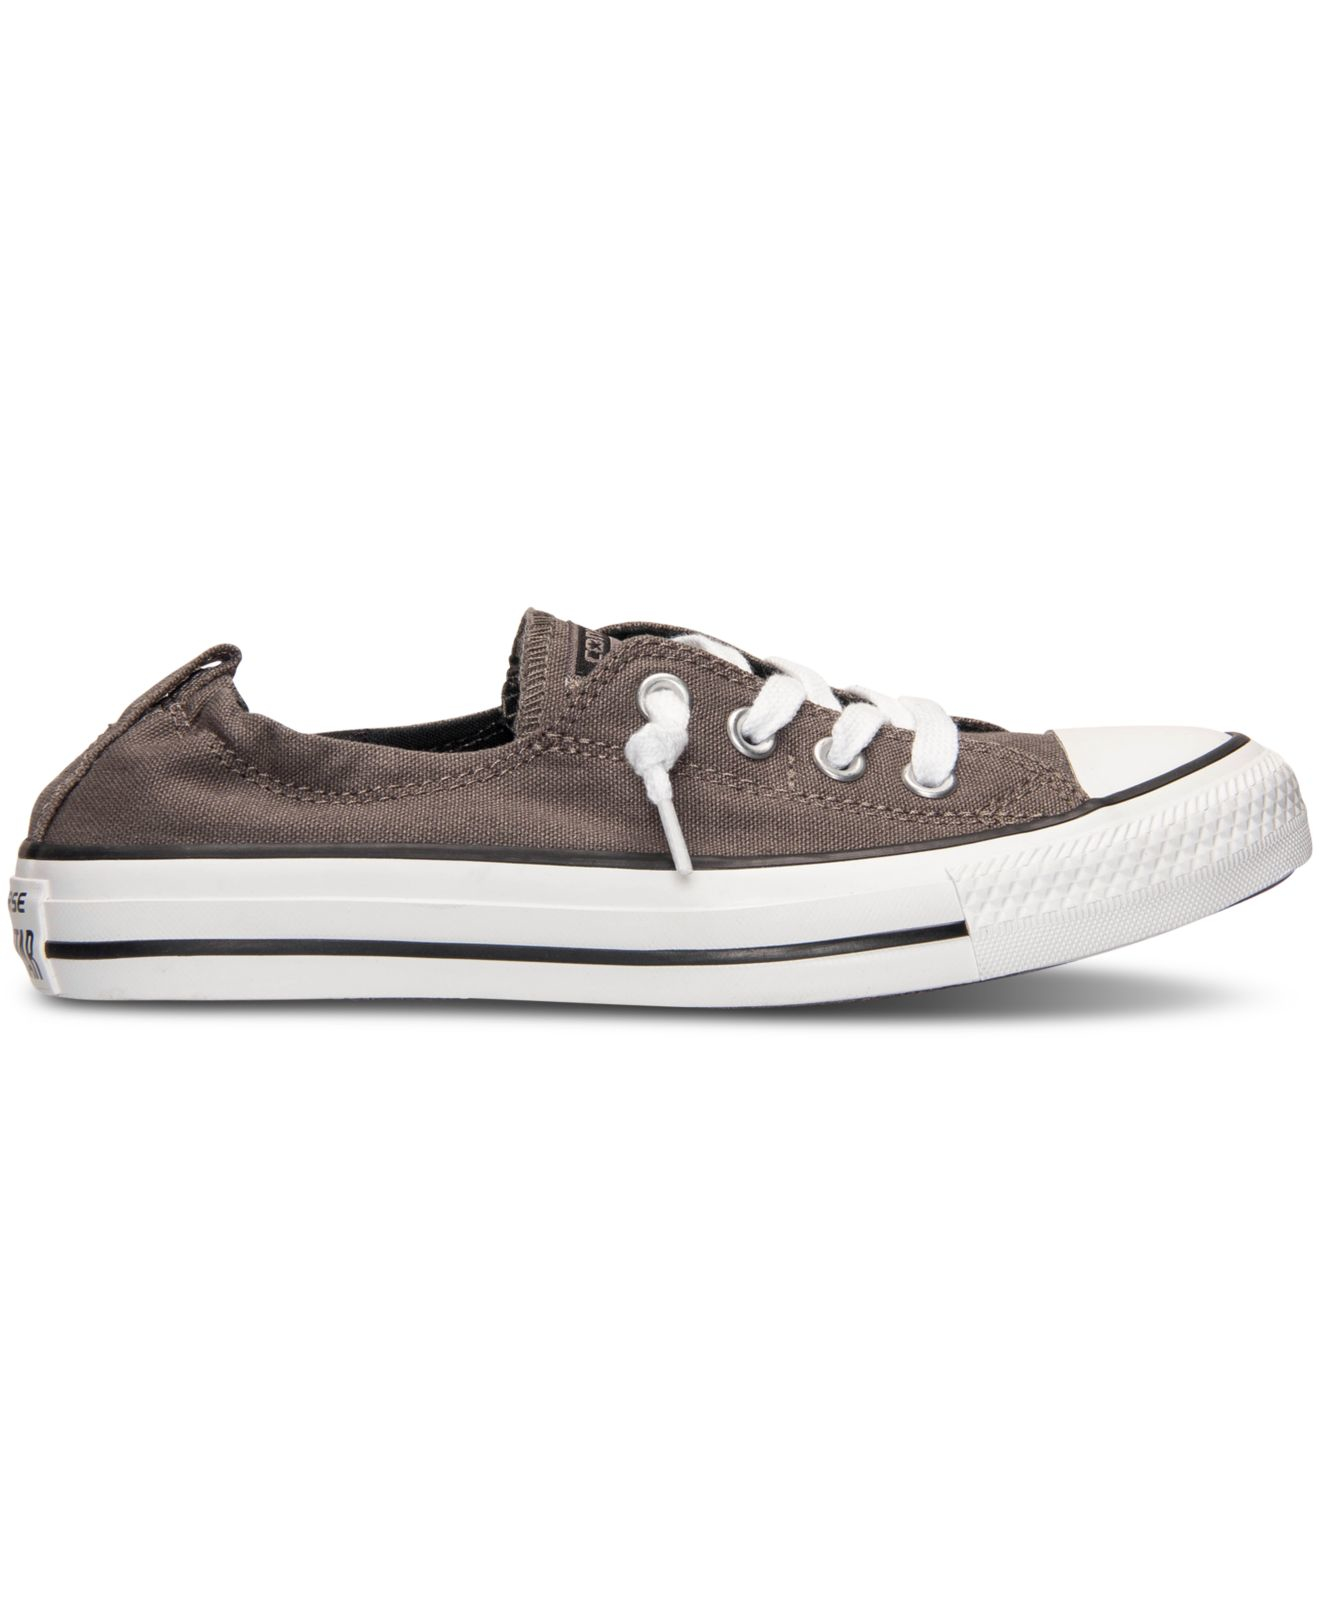 c09f58d96b6 Lyst - Converse Women s Chuck Taylor Shoreline Casual Sneakers From ...